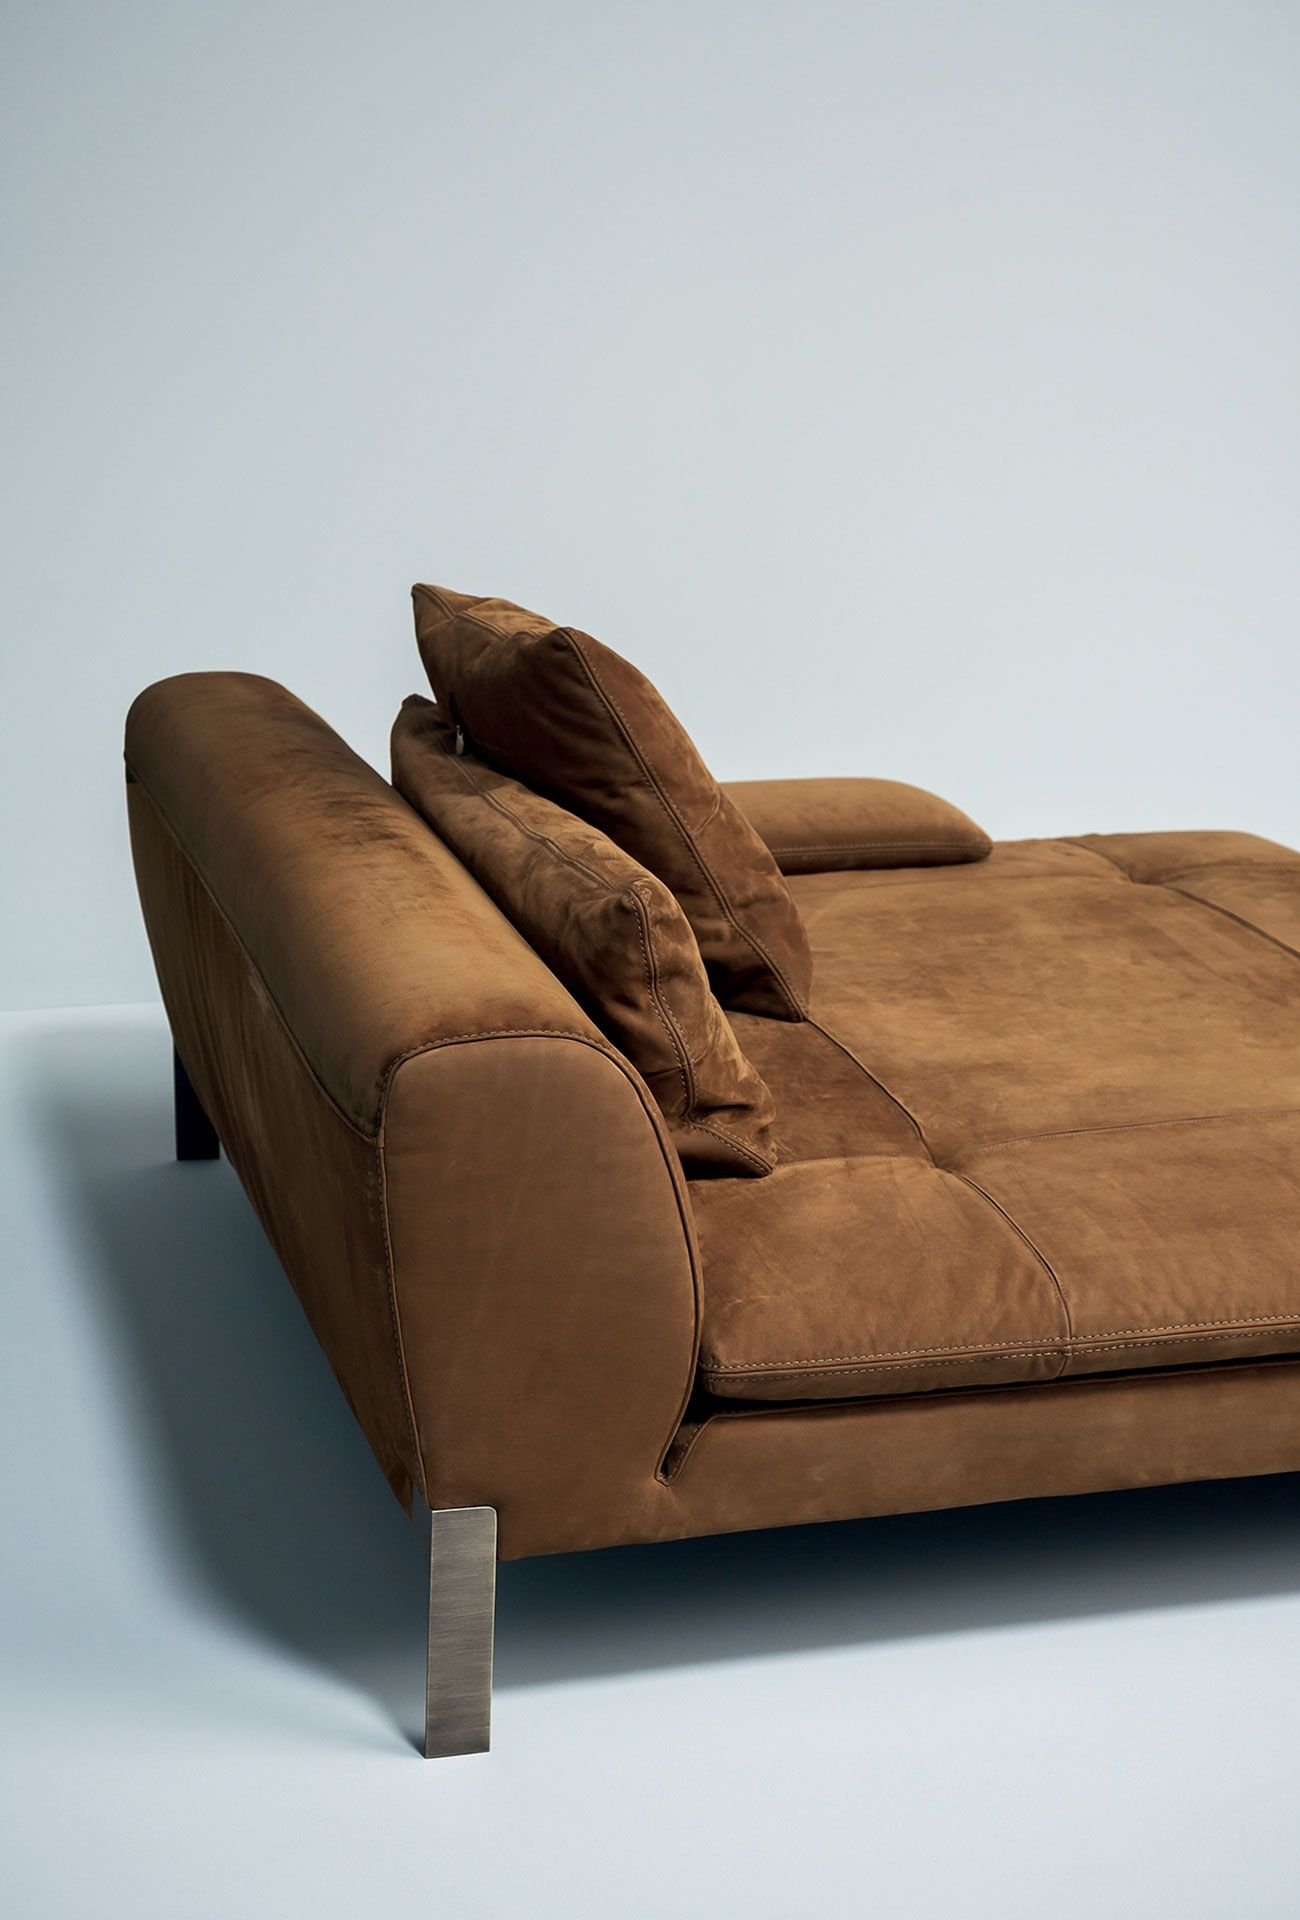 8b2207e831cf3fac46d2b45adaa032d0 on Traditional Style Leather Sofas id=1005448